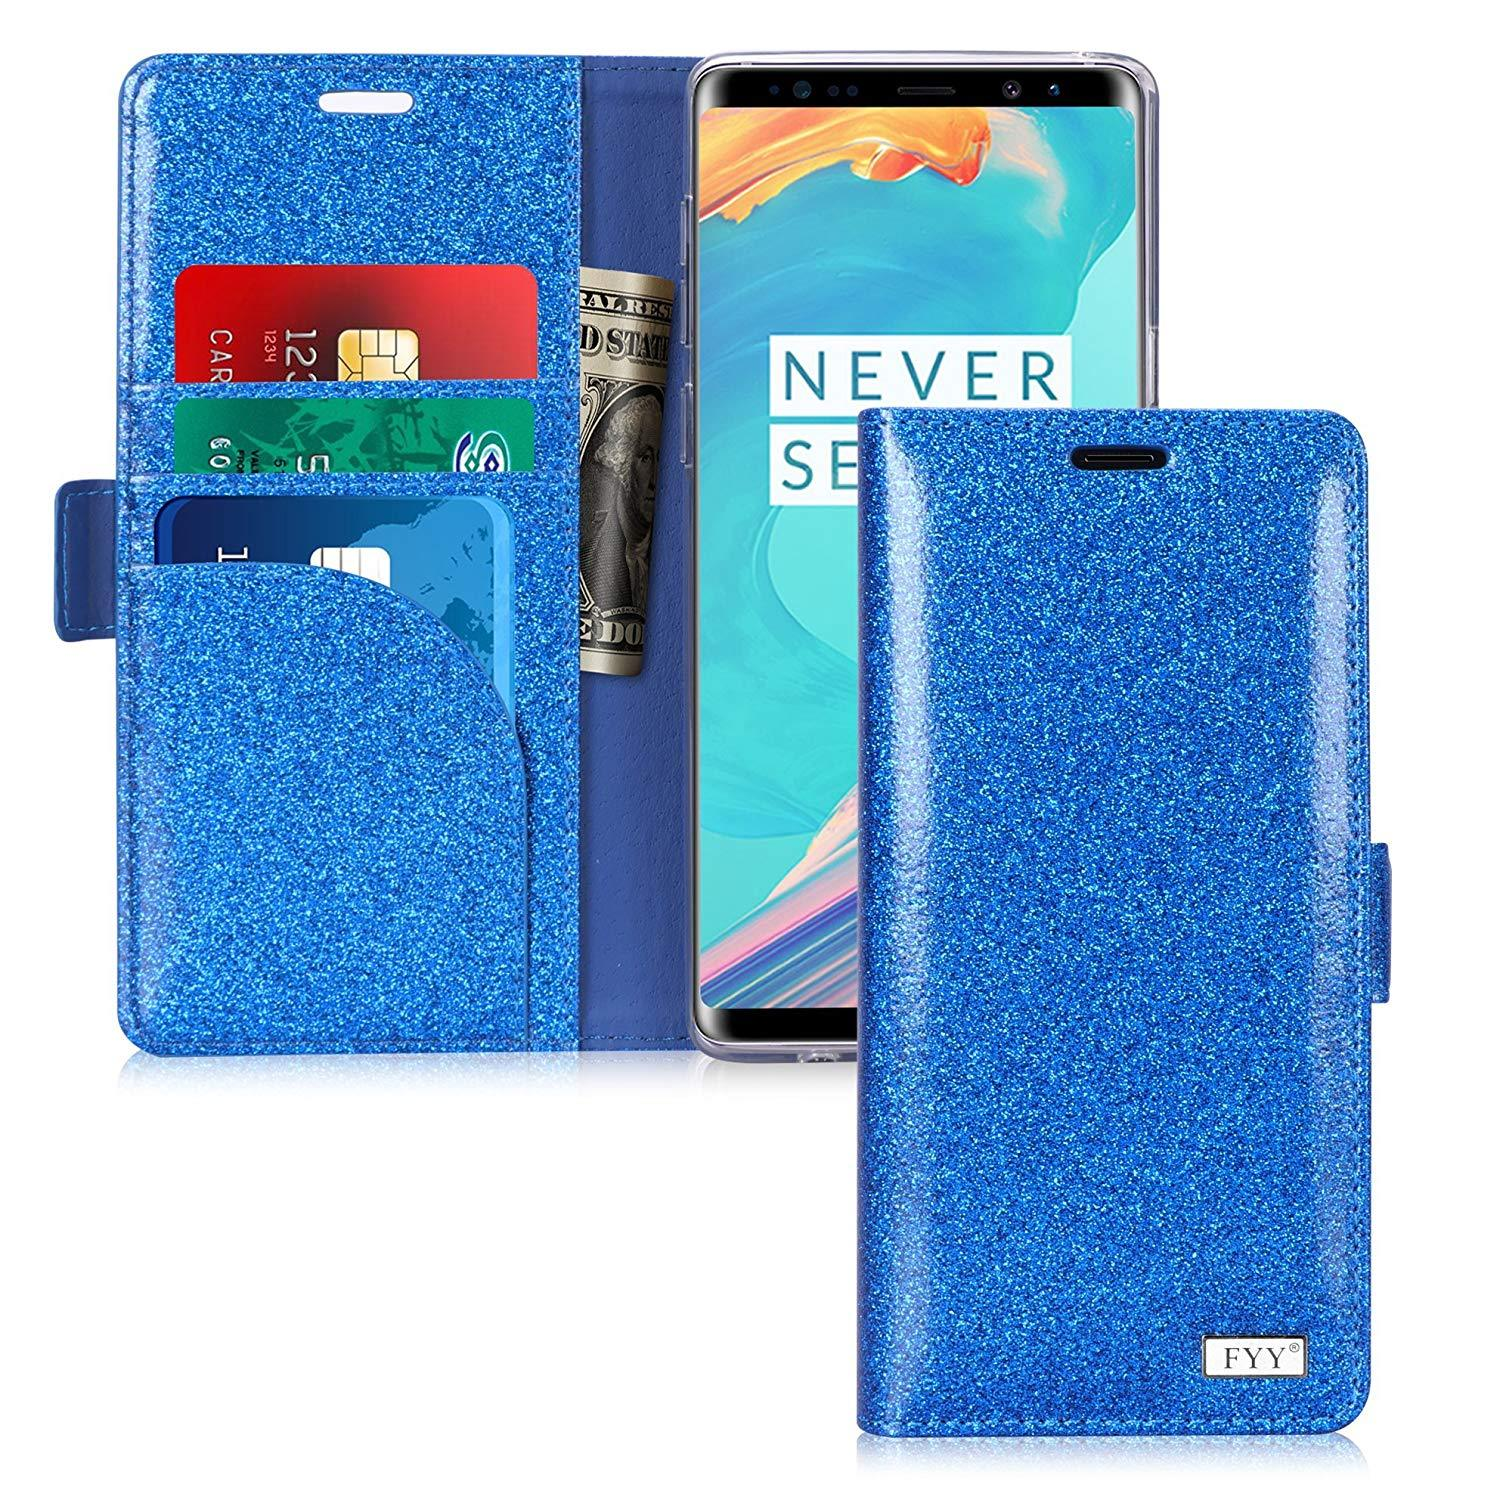 Preminum PU Leather Case for Galaxy Note 9